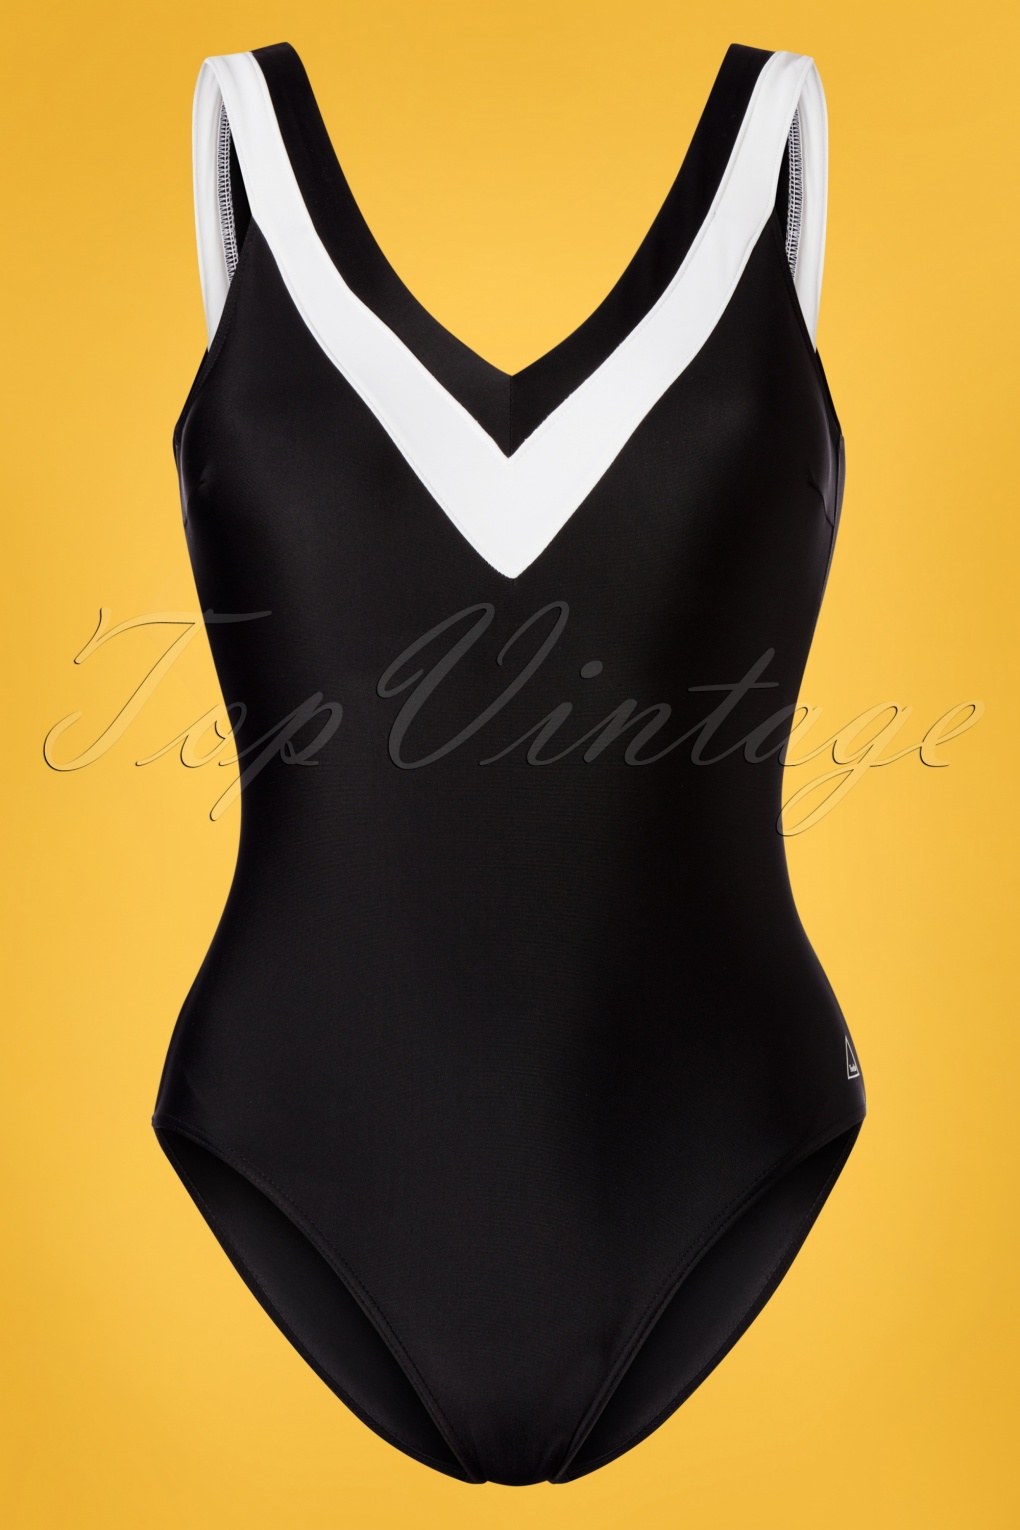 Vintage Bathing Suits | Retro Swimwear | Vintage Swimsuits 60s Jody Swimsuit in Black and White �60.00 AT vintagedancer.com